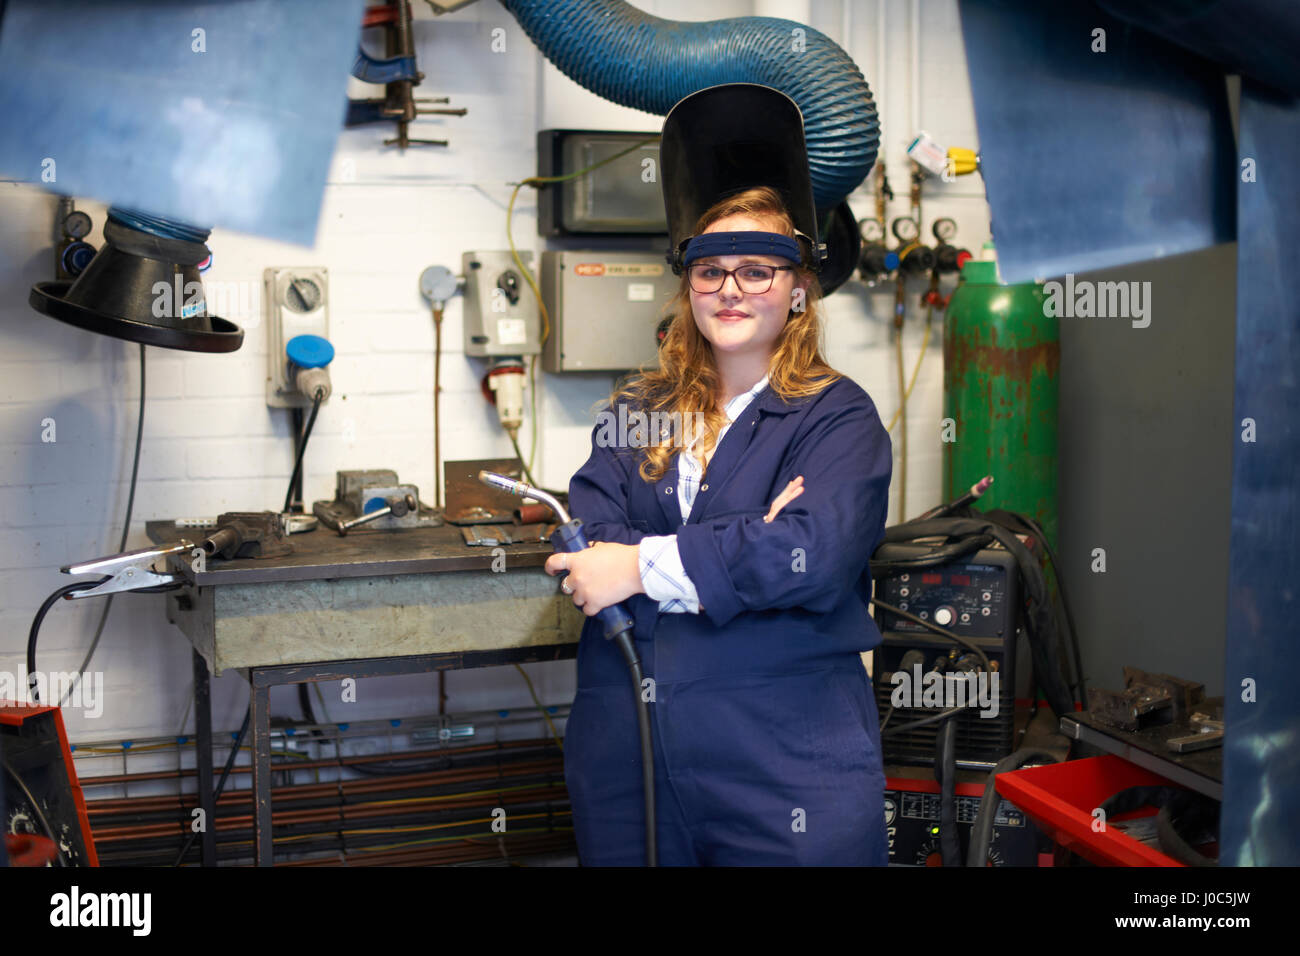 Portrait of female higher education student holding welding torch in workshop at college - Stock Image